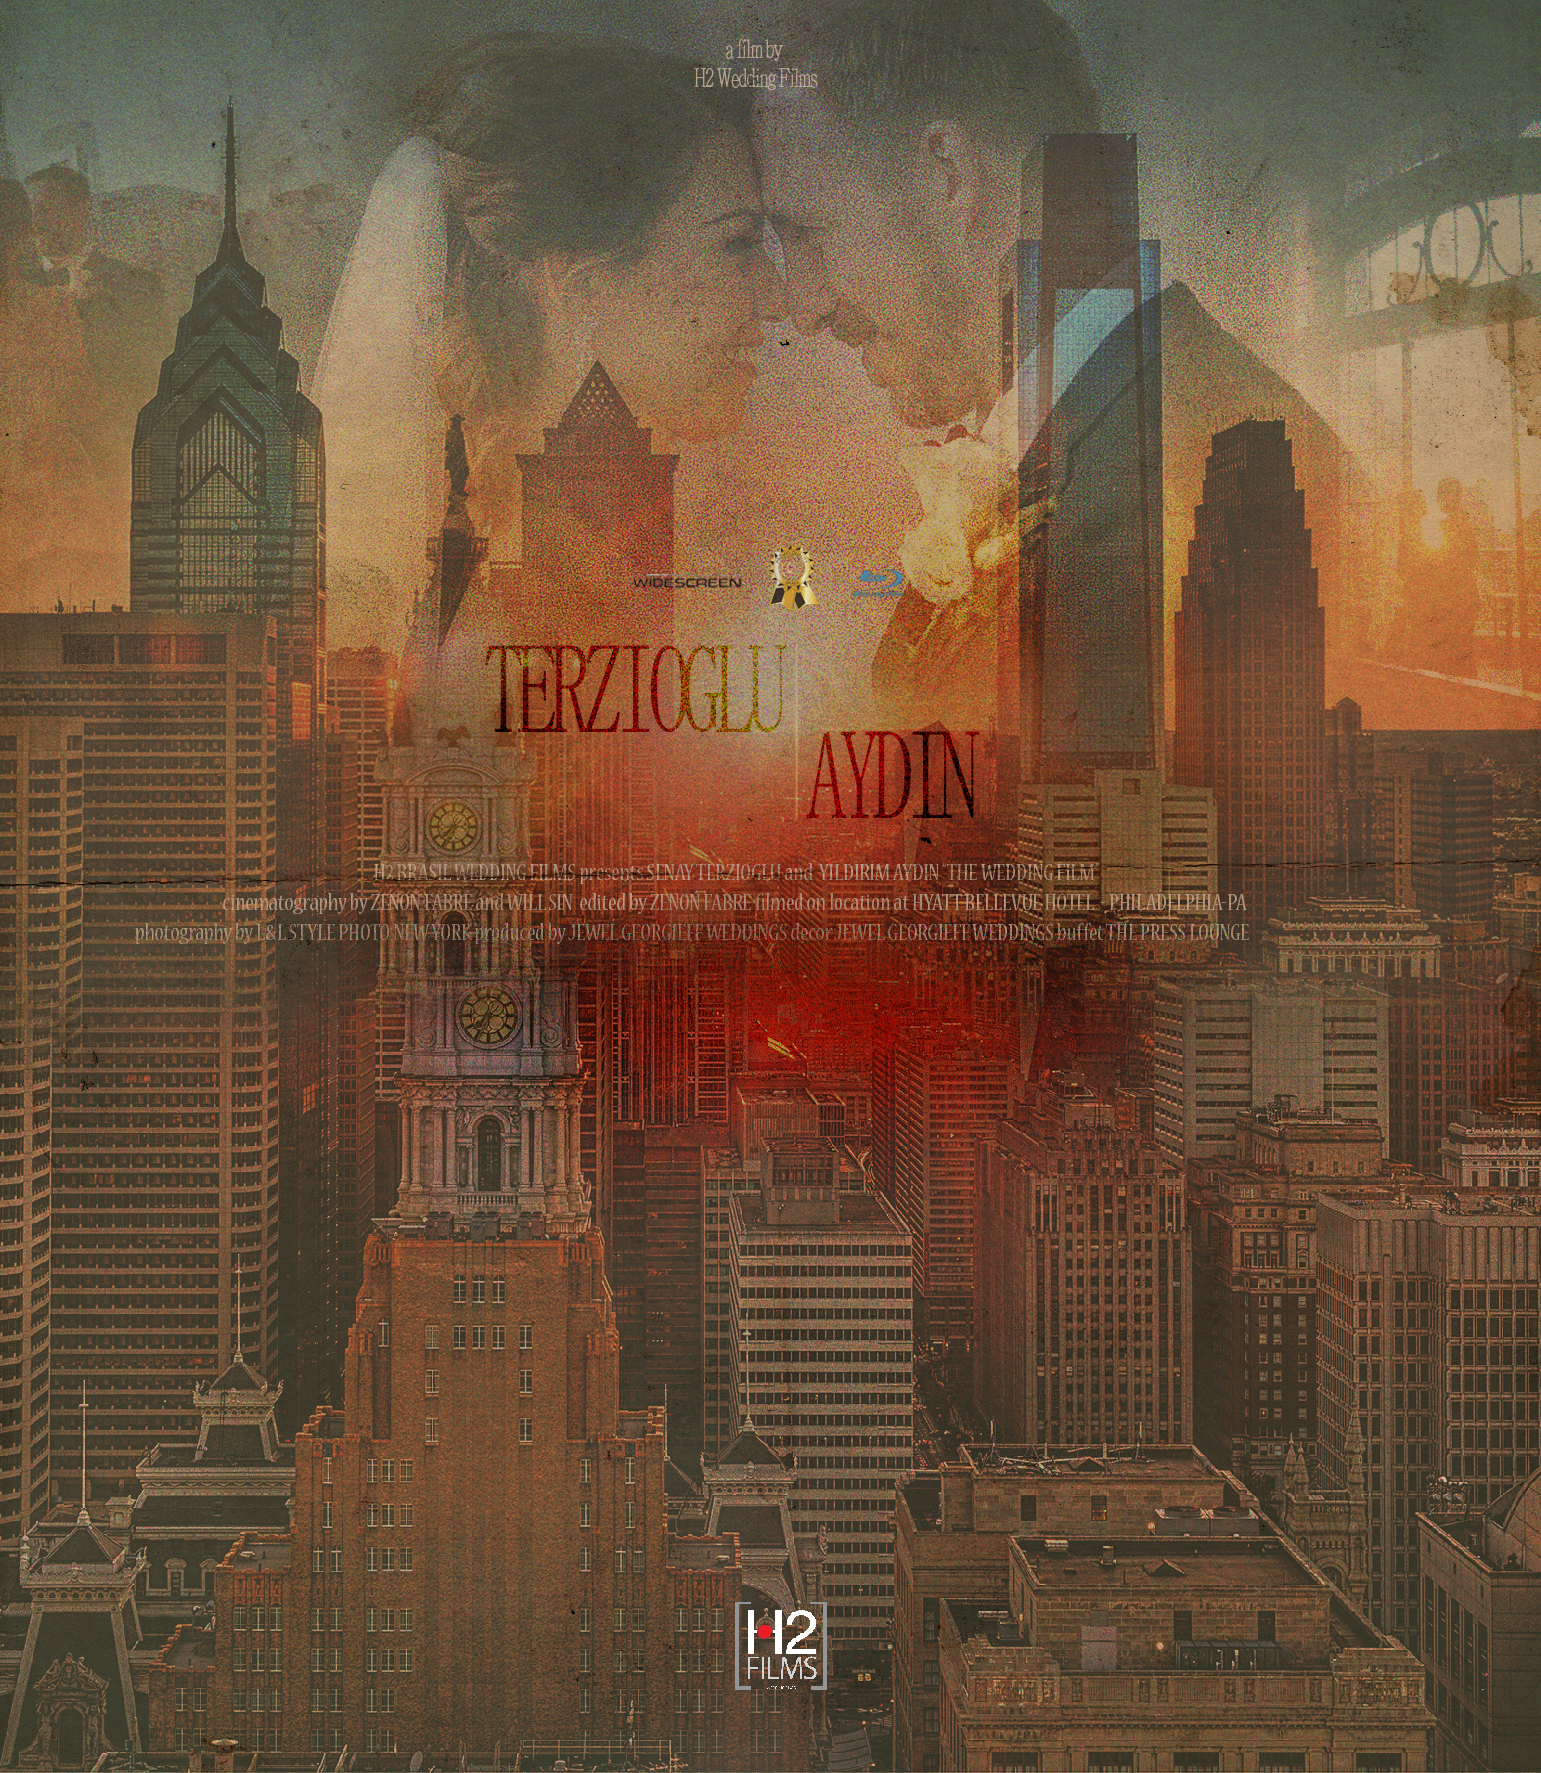 """Bellevue, Philly - Film: H2 WEDDING FILMS H2 BRASIL WEDDING FILMS presents SENAY TERZIOGLU and YILDIRIM AYDIN """"THE WEDDING FILM"""" cinematography by ZENON FABRE and WILL SIN directed and edited by ZENON FABRE filmed on location at HYATT BELLEVUE HOTEL – PHILADELPHIA-PA"""